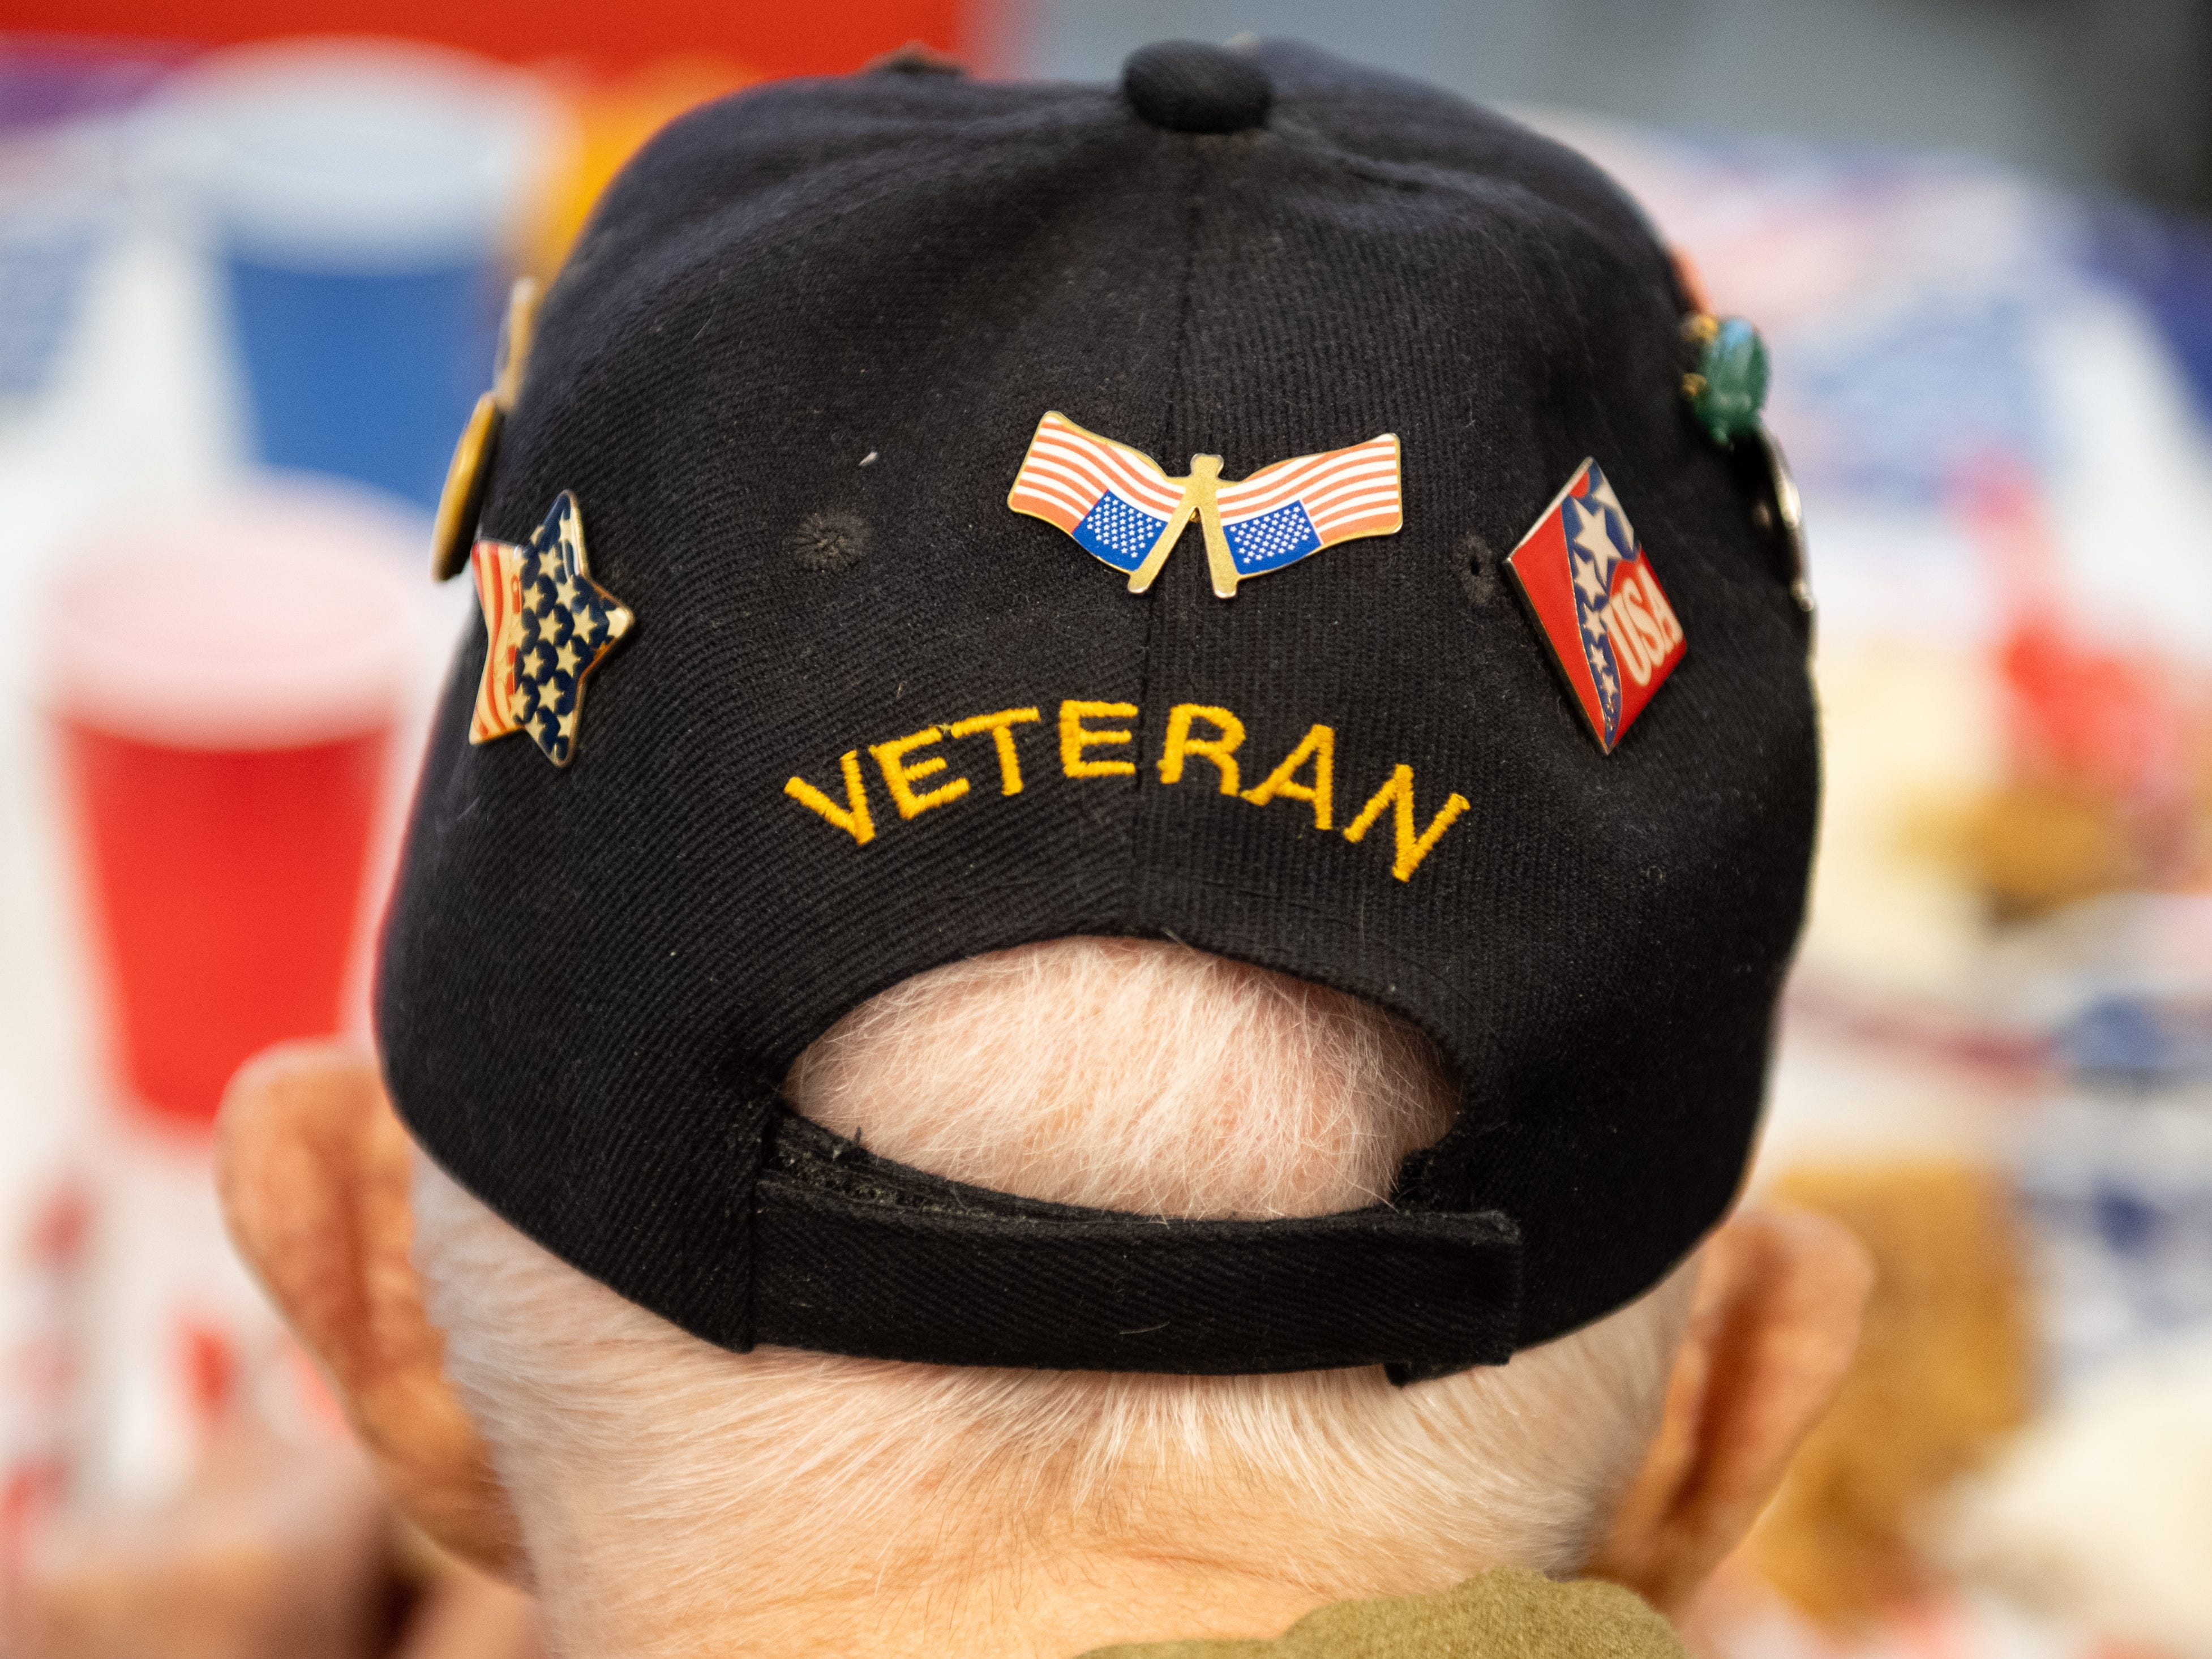 Some veterans in attendance wore hats and shirts showing their pride.